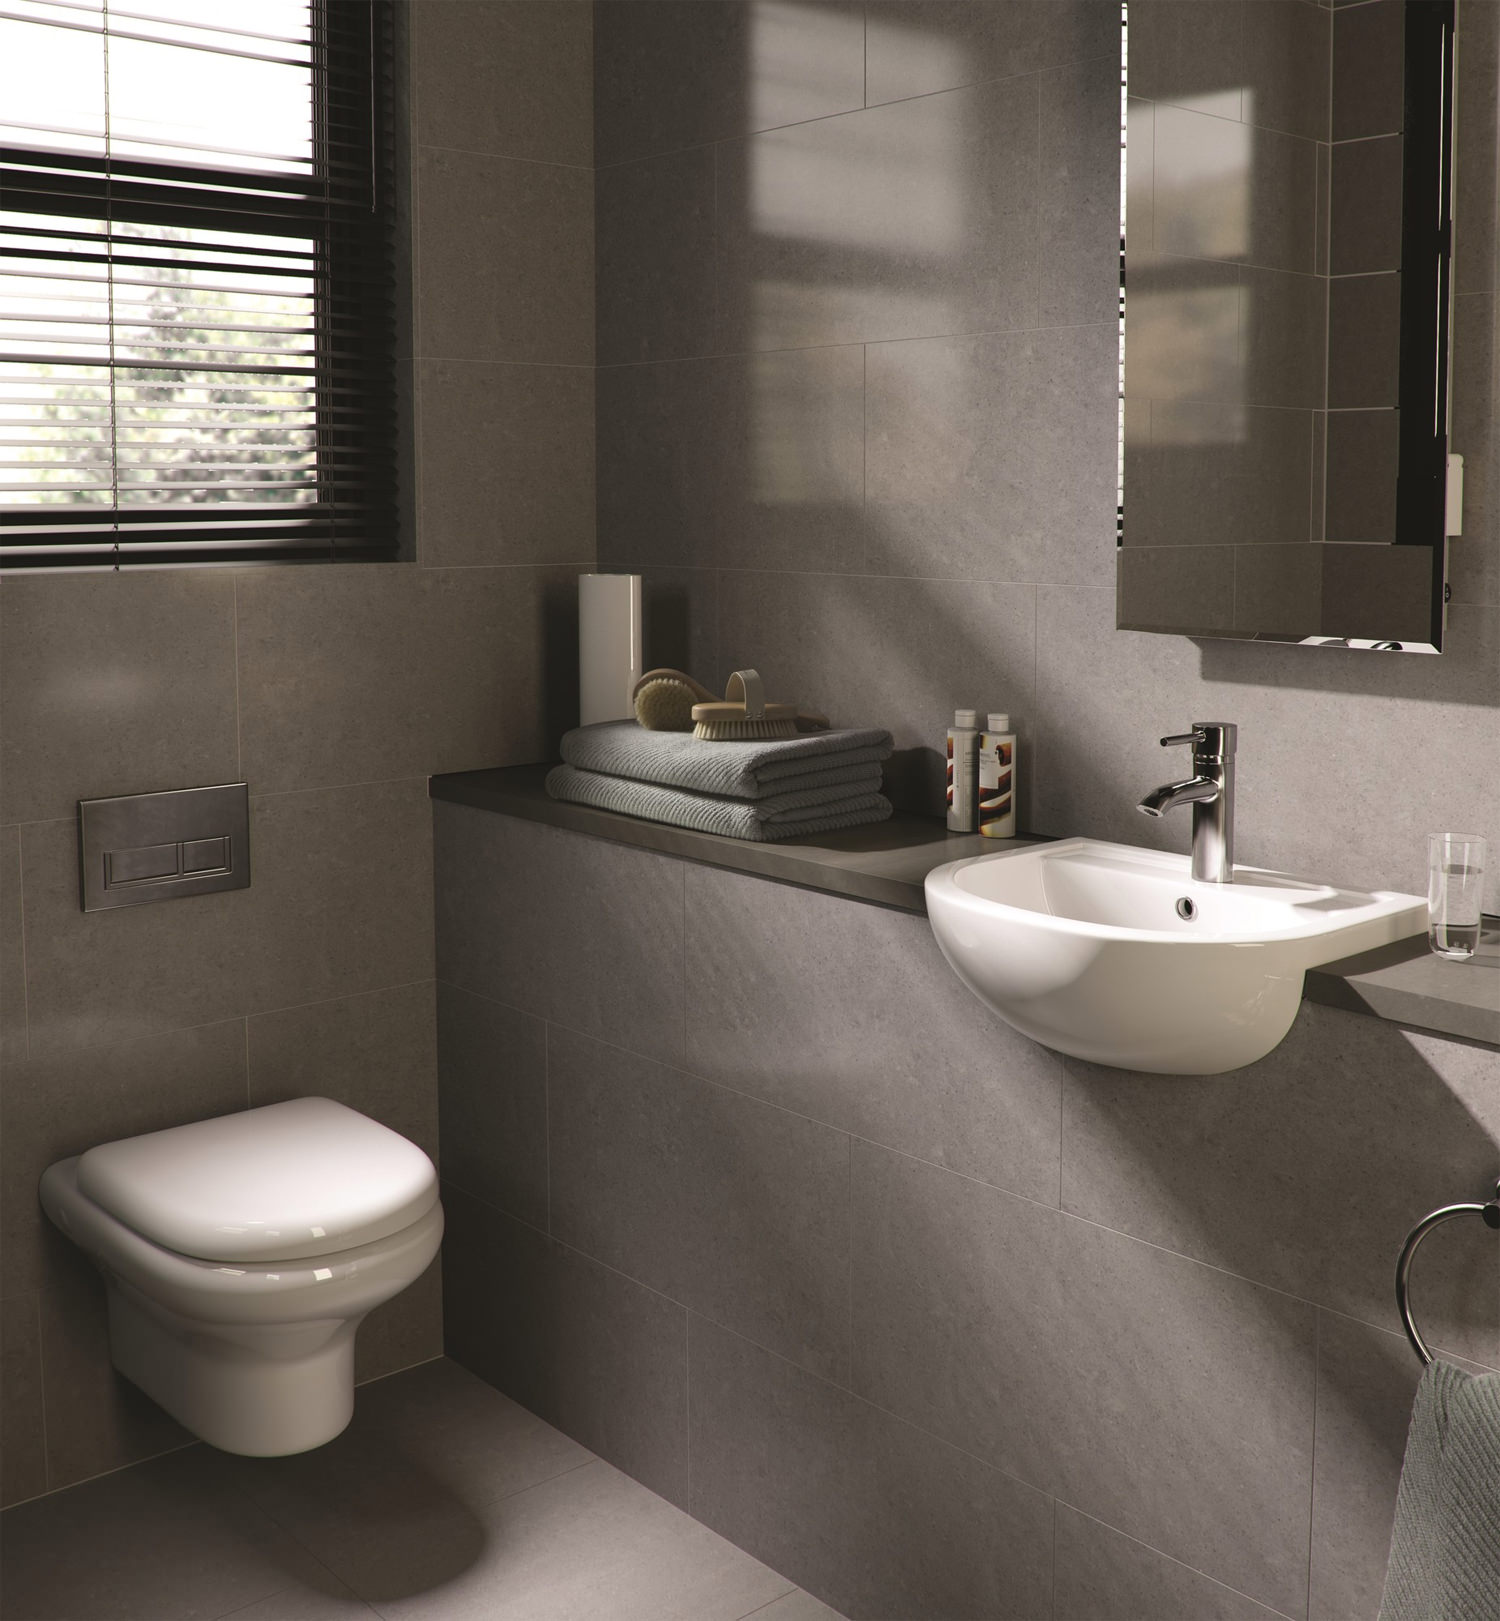 Recessed Wall Sink : Additional image of RAK Compact New Wall Hung WC Pan With Soft-Close ...